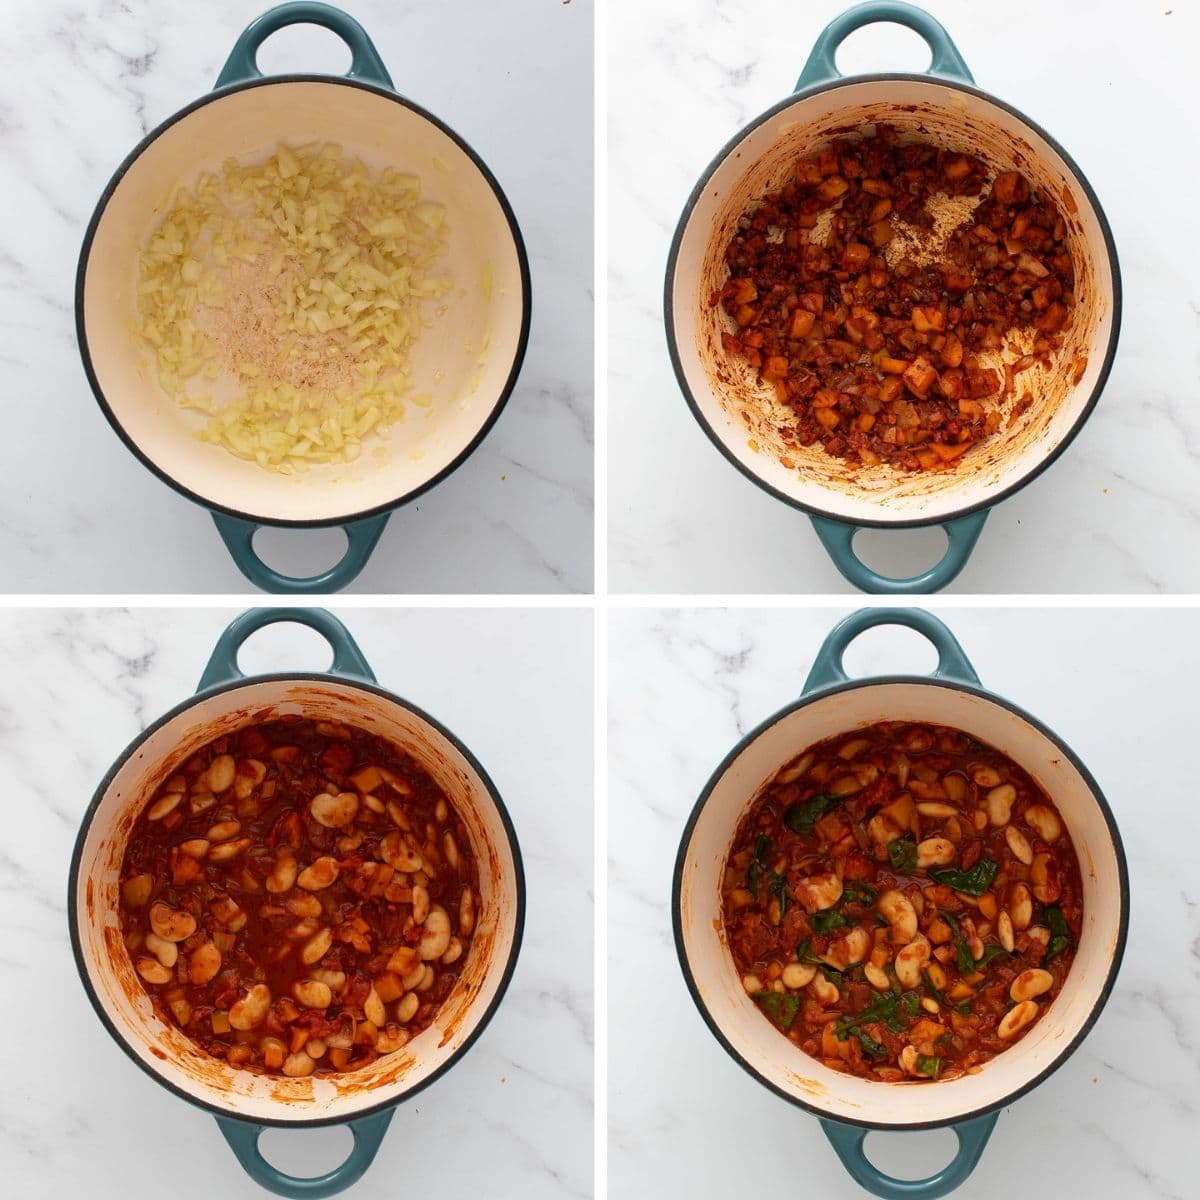 Step by step images showing how to make butter bean and chorizo stew.